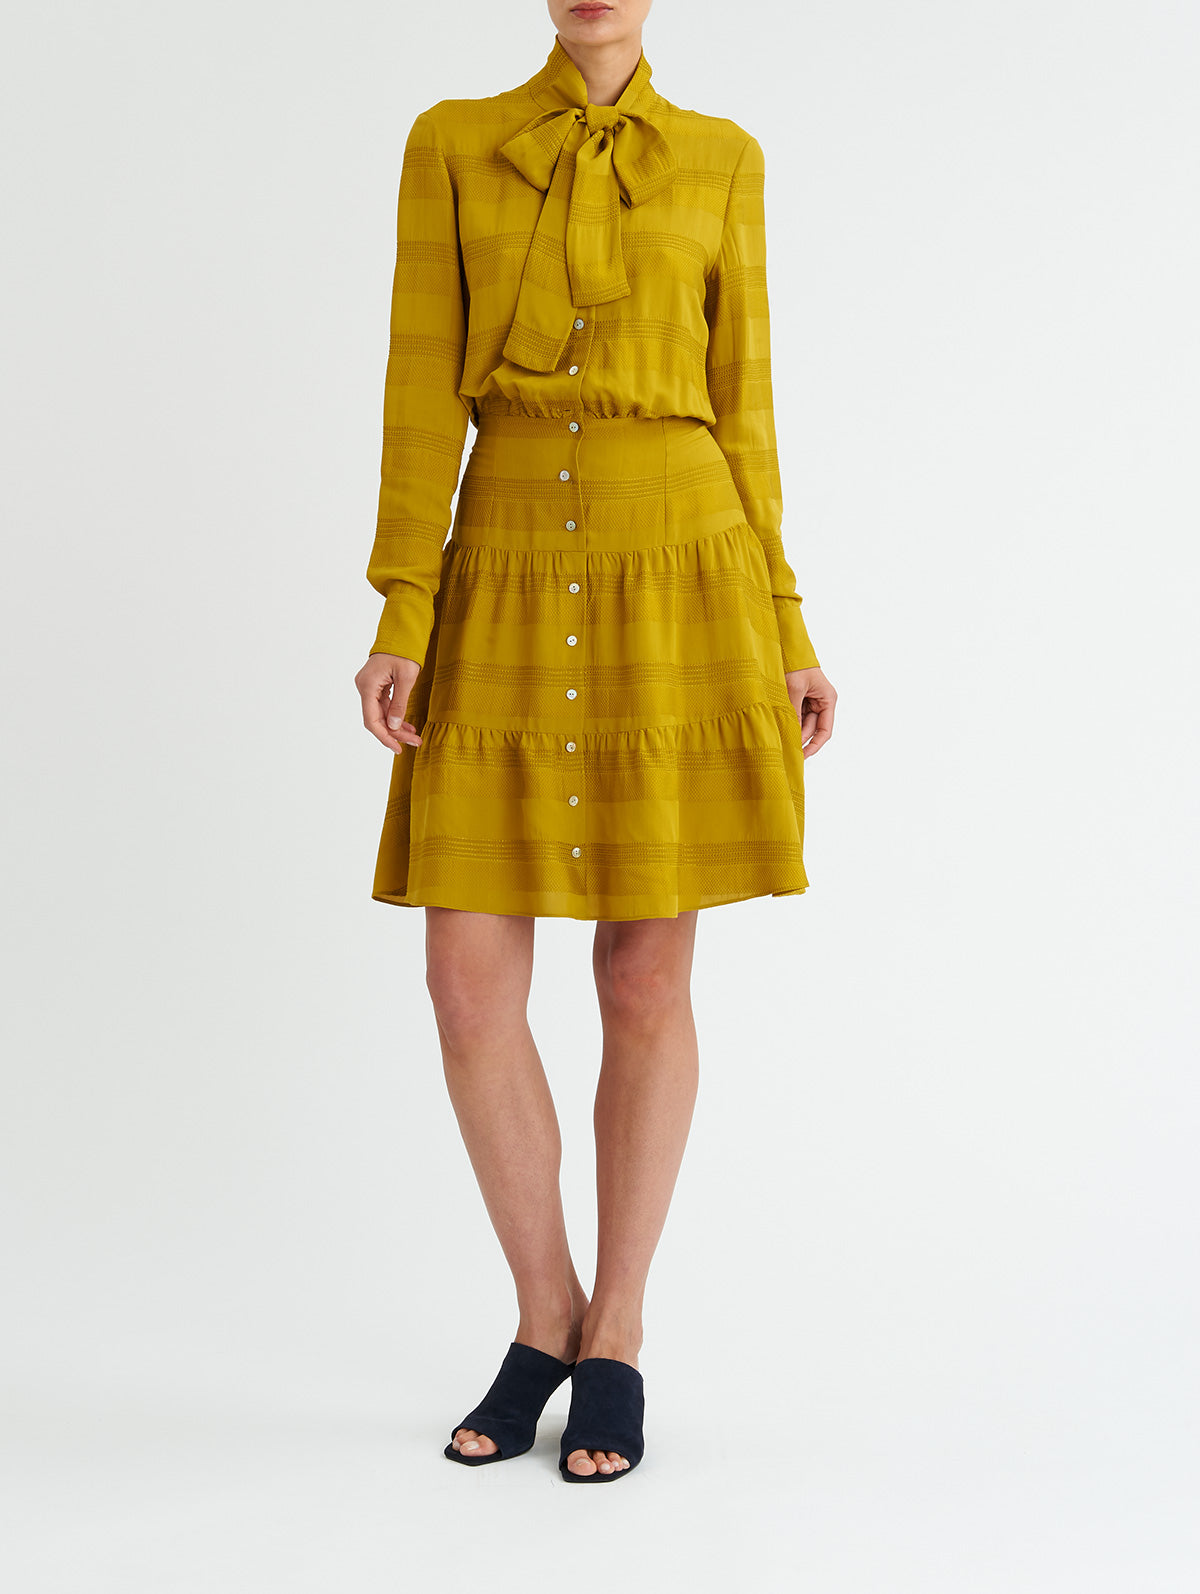 TIERED TIE DRESS, CHARTREUSE<br> PRE-ORDER